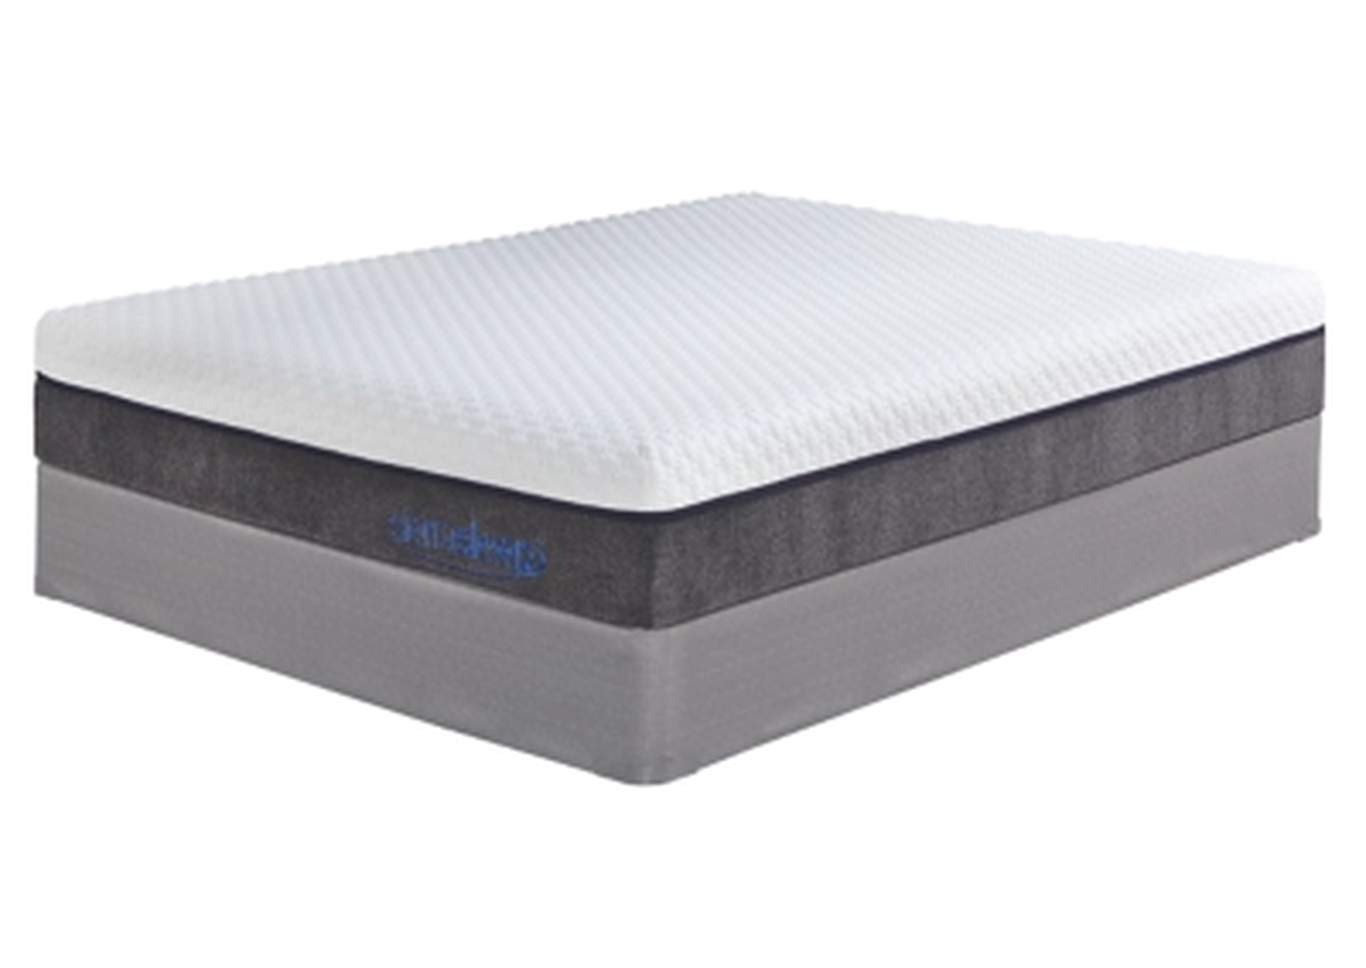 Mygel Hybrid 1100 Full Mattress,Sierra Sleep